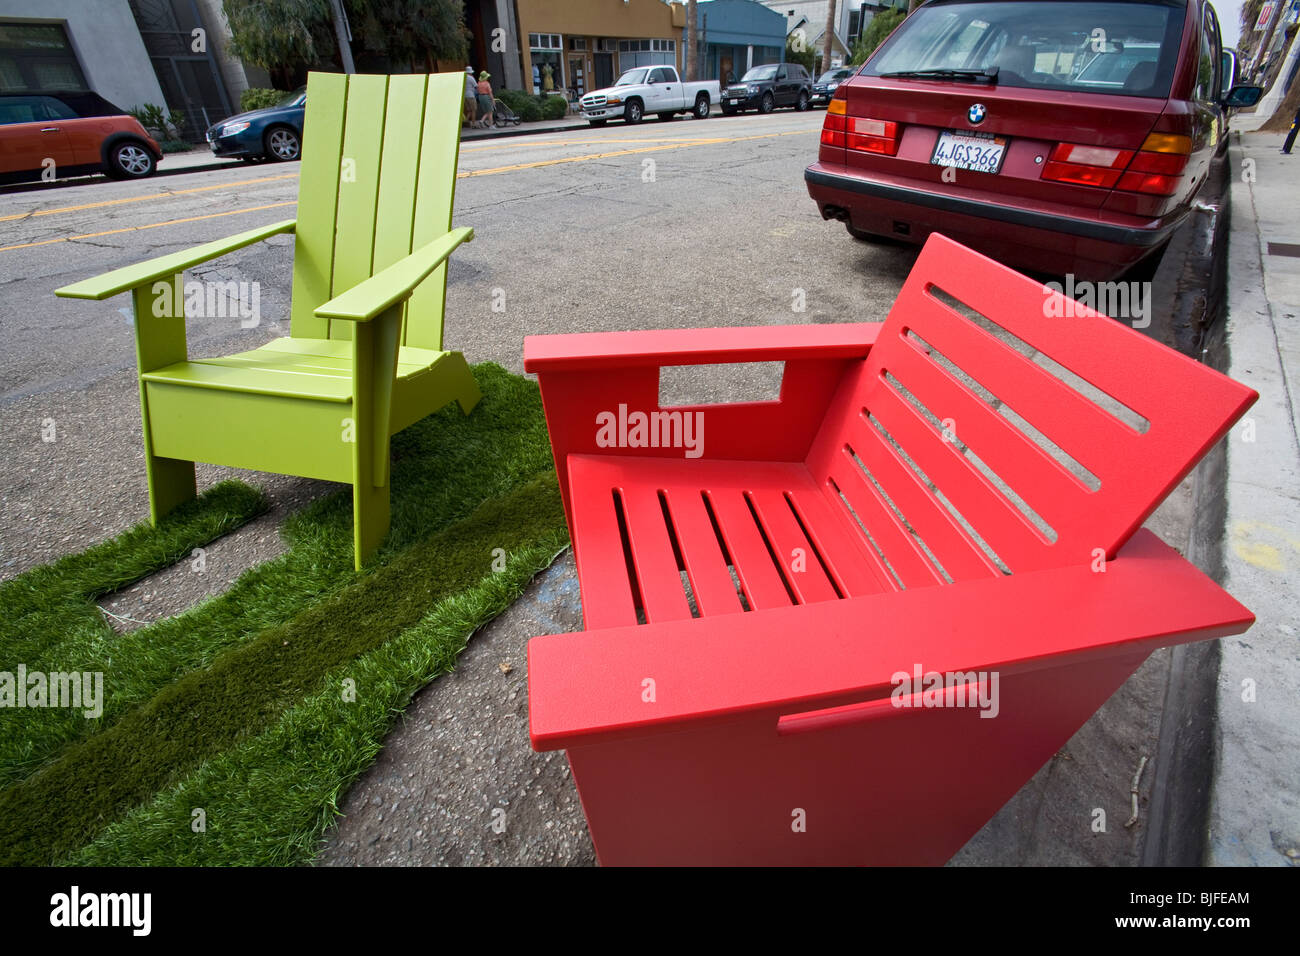 Recycled plastic outdoor furniture by Loll Designs, made from Stock